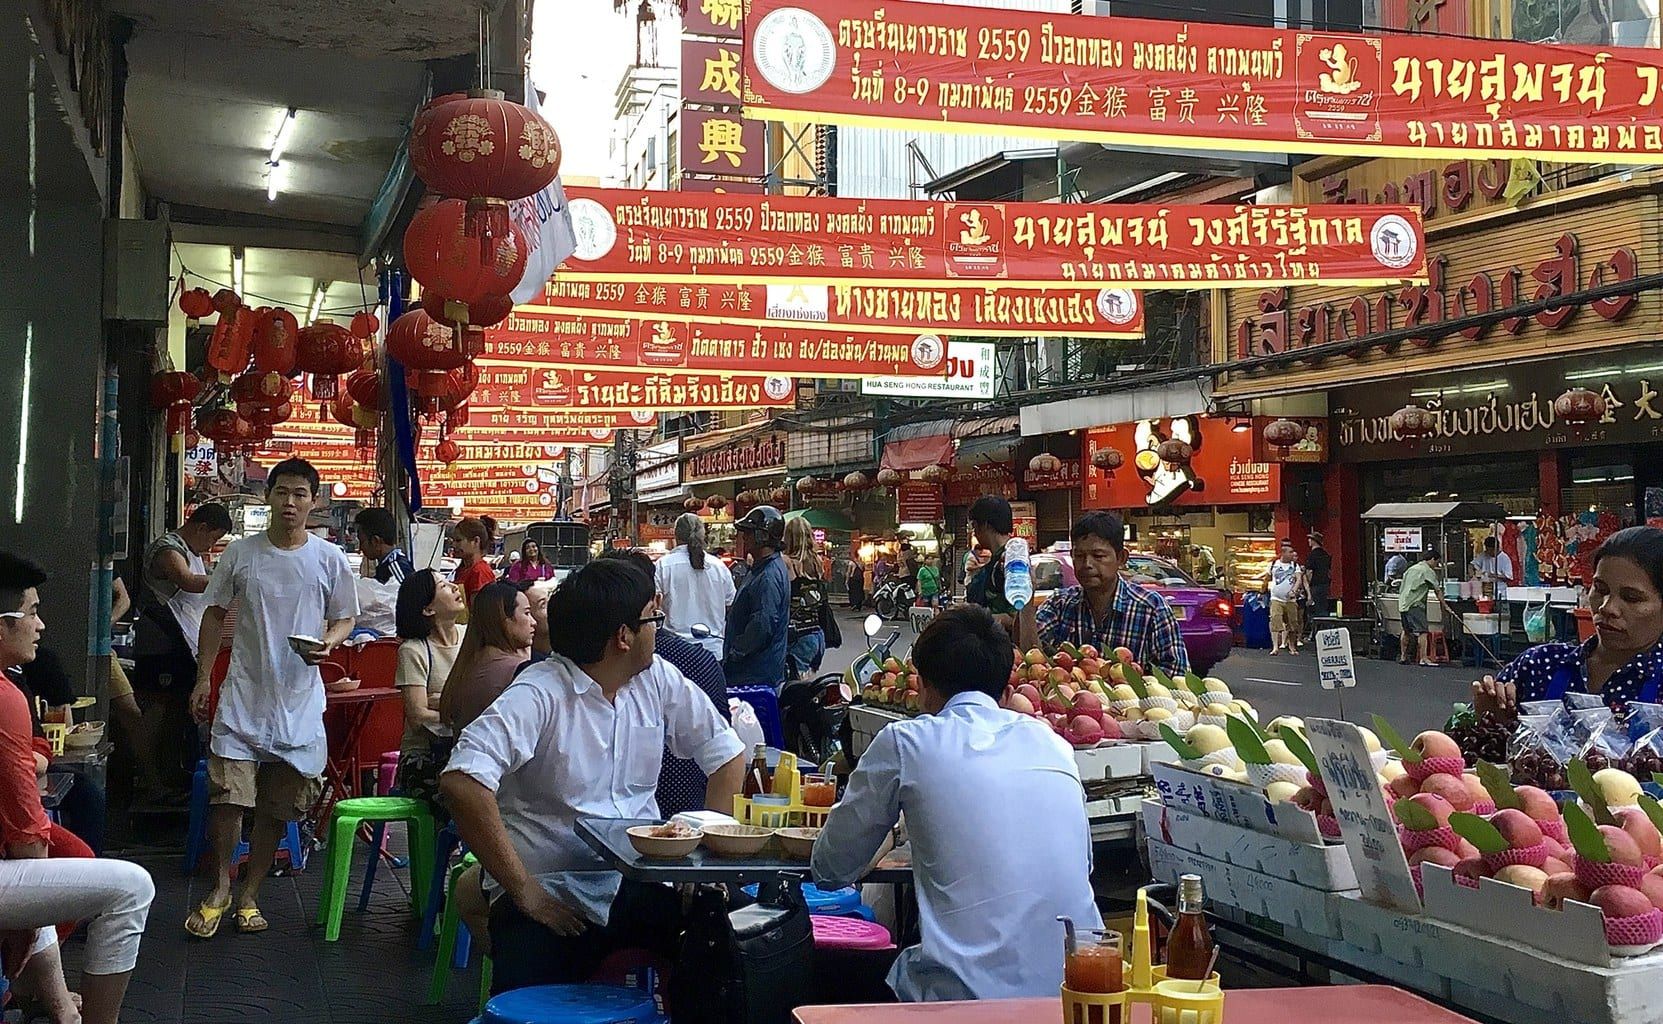 Bangkok Chinatown food tour - What the locals eat